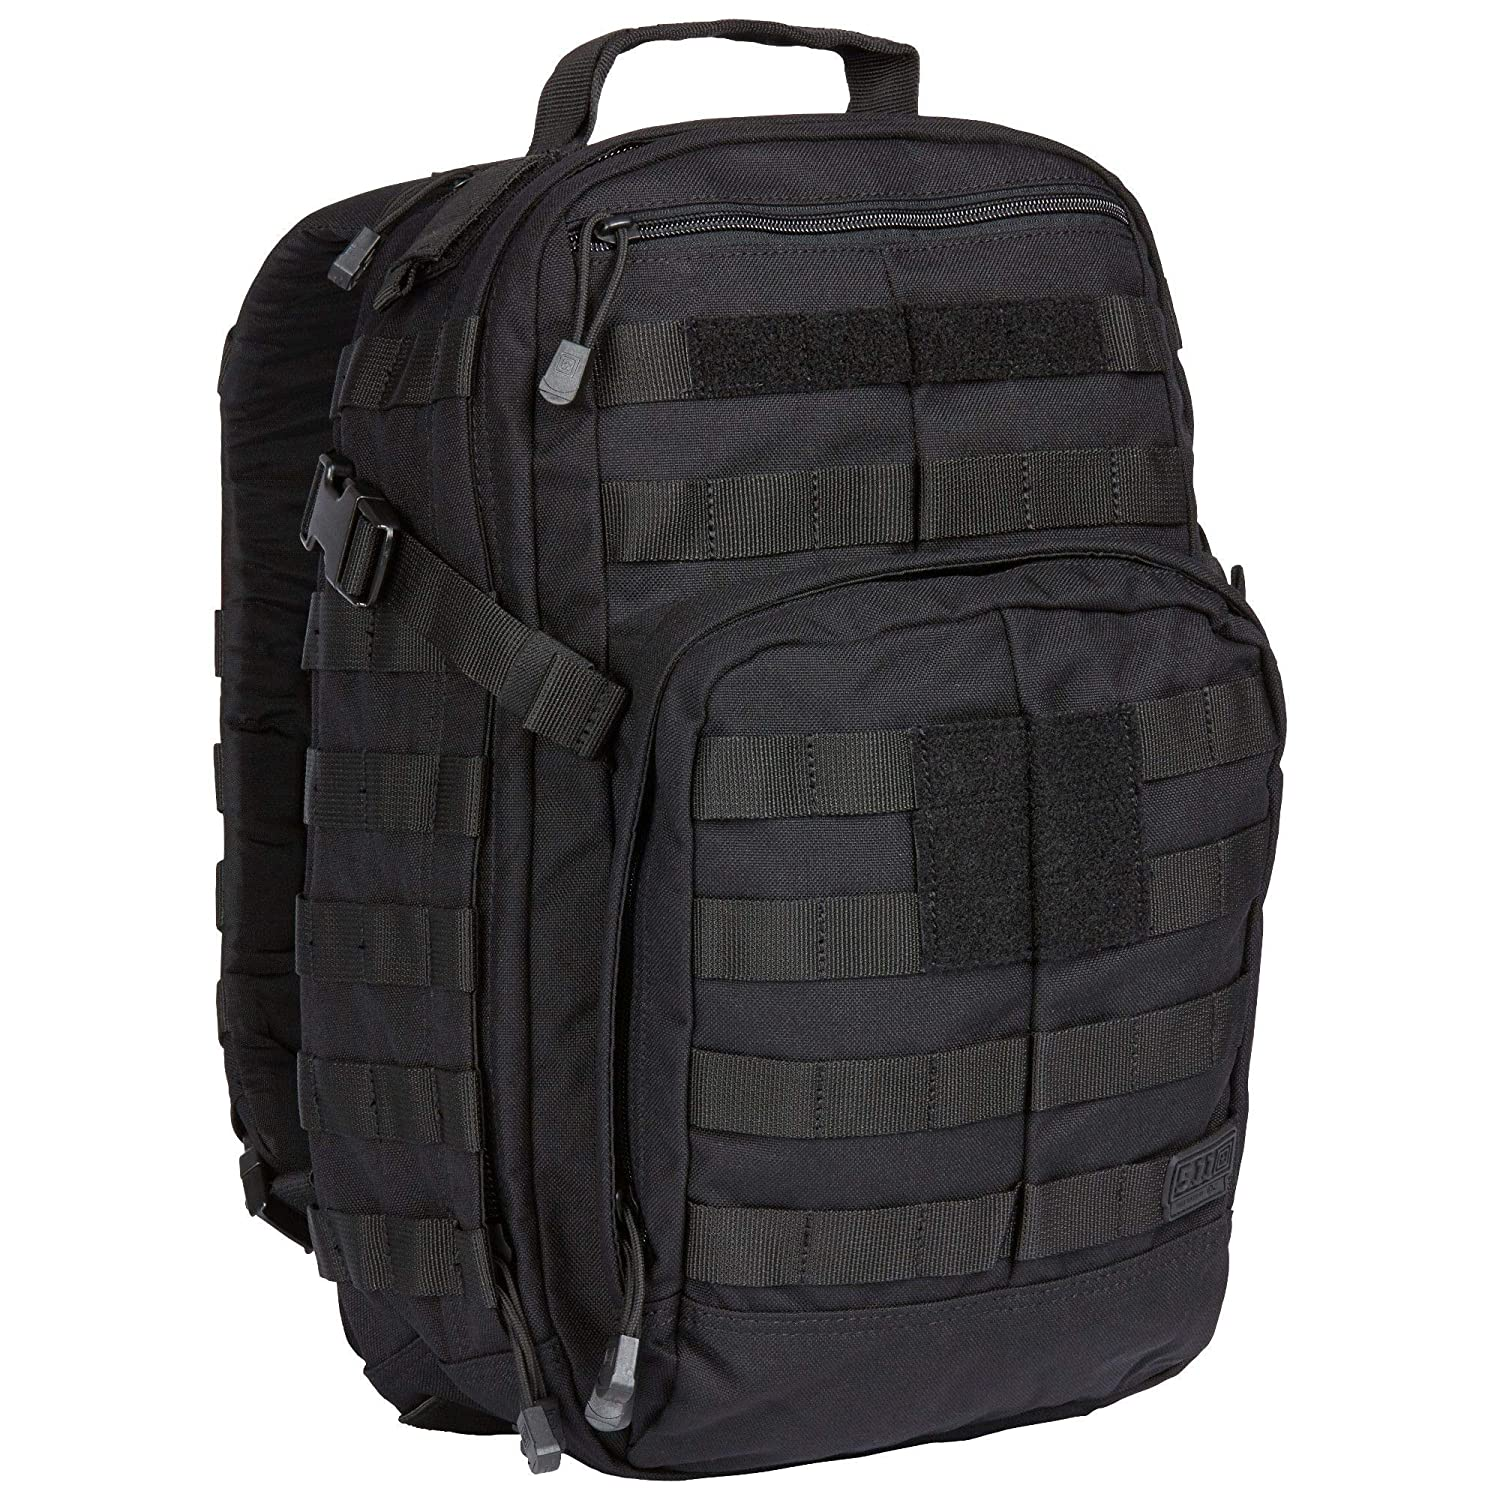 Amazon.com   5.11 RUSH12 Tactical Military Assault Molle Backpack, Bug Out  Rucksack Bag, Small, Style 56892, Black   Sports   Outdoors 4c4e03c75a6